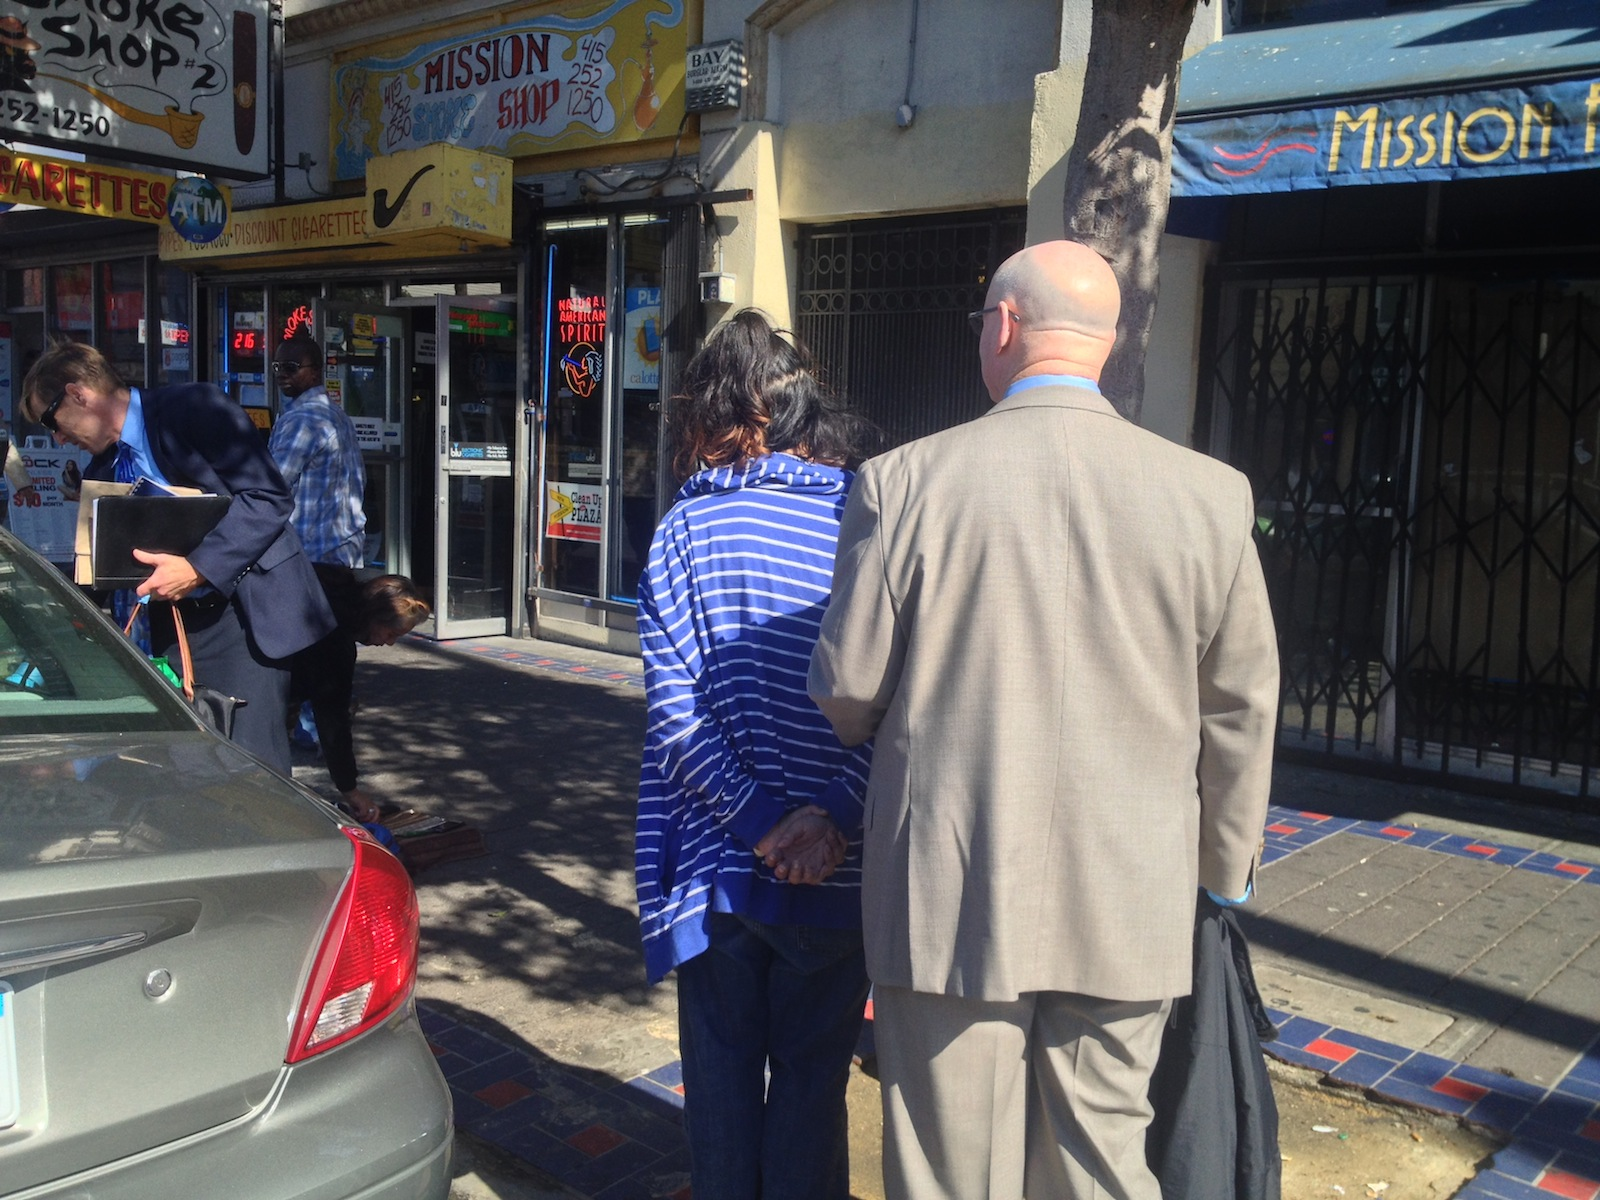 Plaza Arrests Follow 16th and Mission Shooting